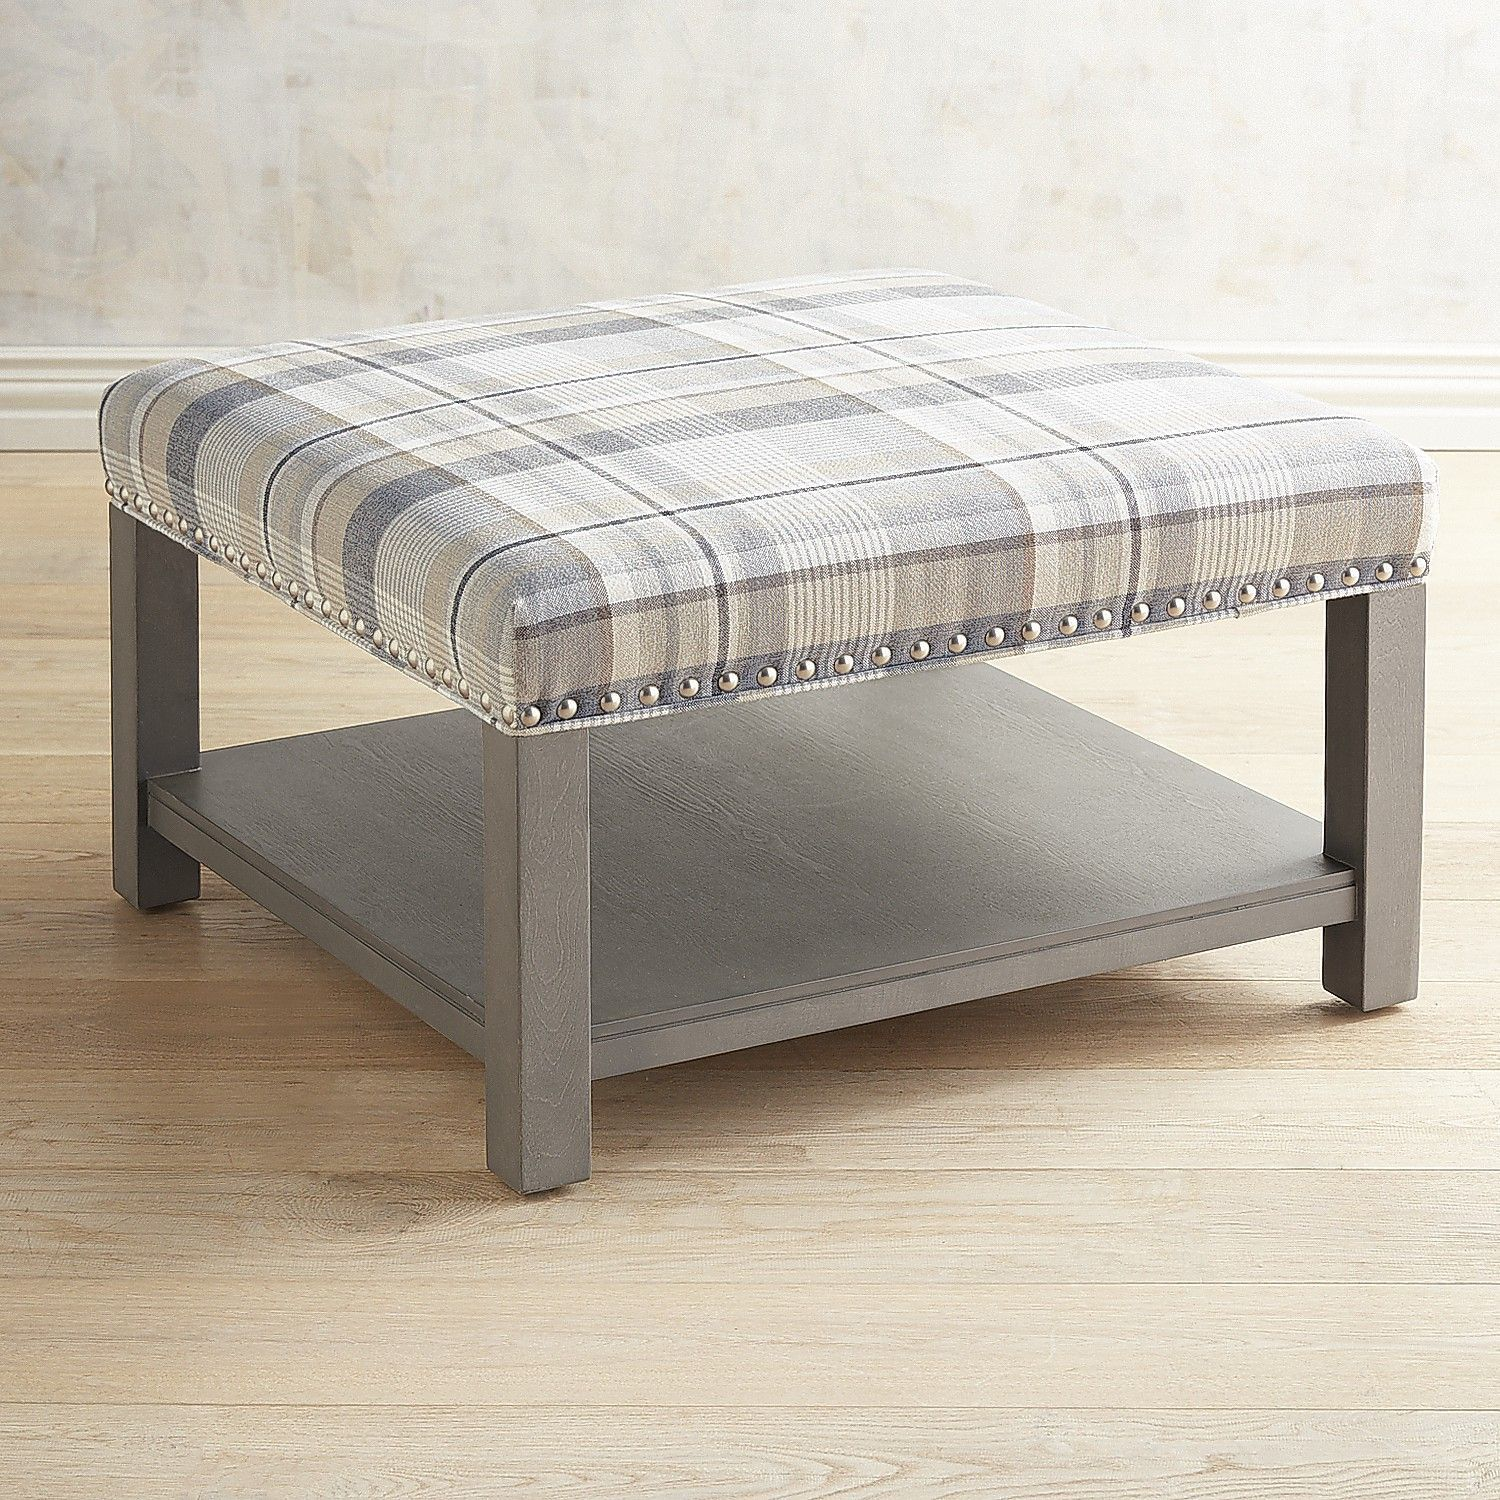 Peachy Liard Gray Plaid Square Cocktail Ottoman Products Gamerscity Chair Design For Home Gamerscityorg